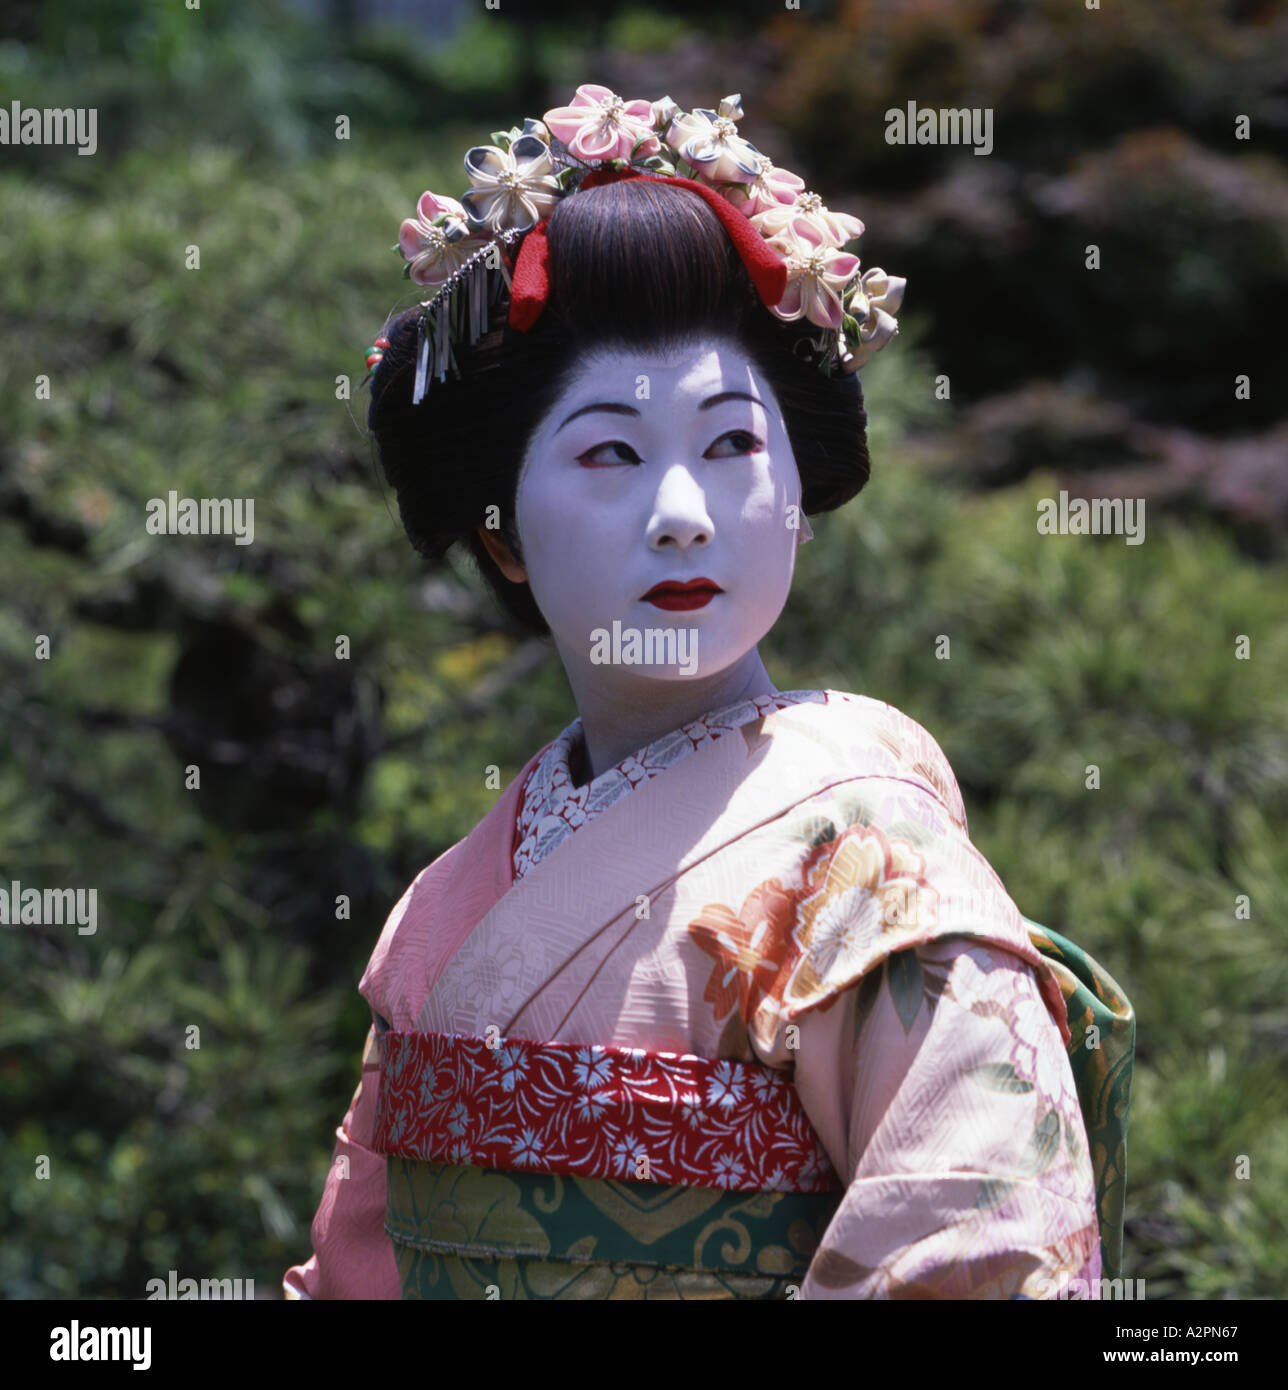 Maiko Without Makeup Mugeek Vidalondon